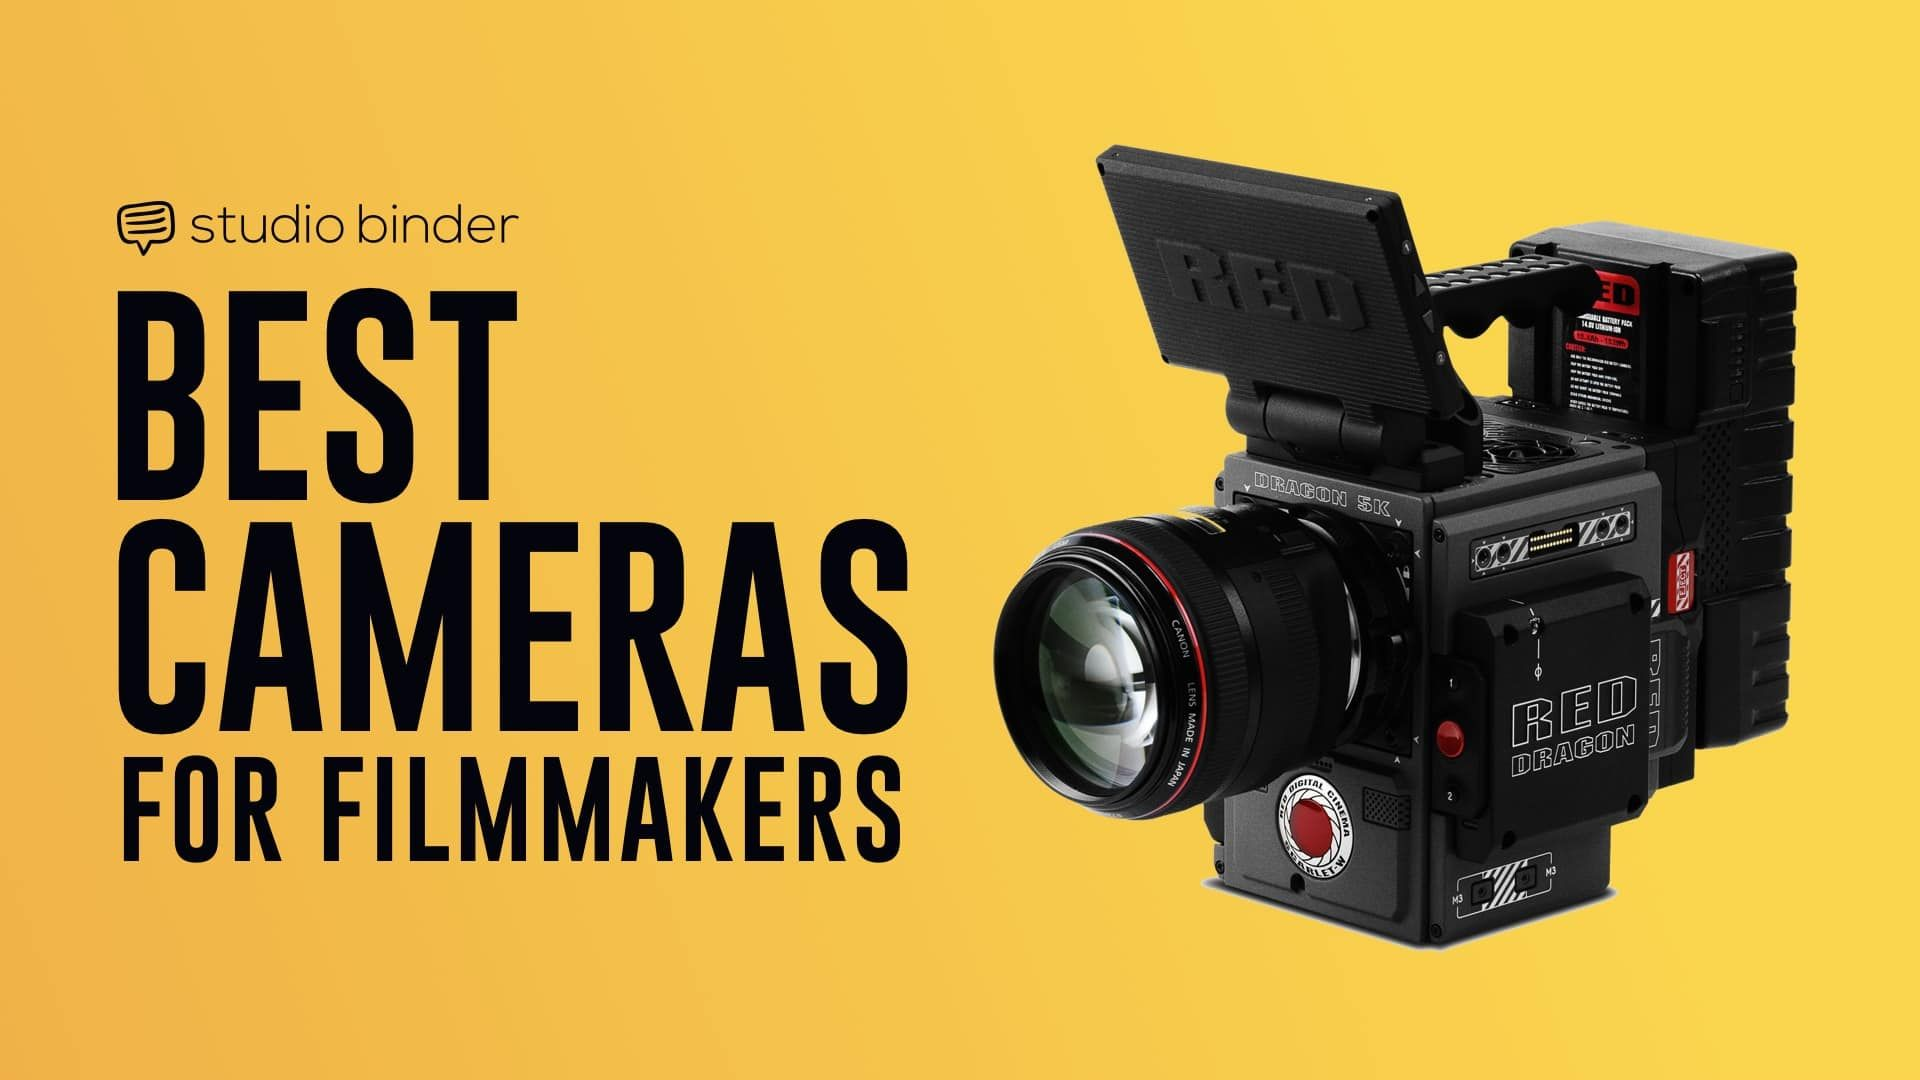 7 Best Video Cameras for Filmmakers in 2019 #Videography